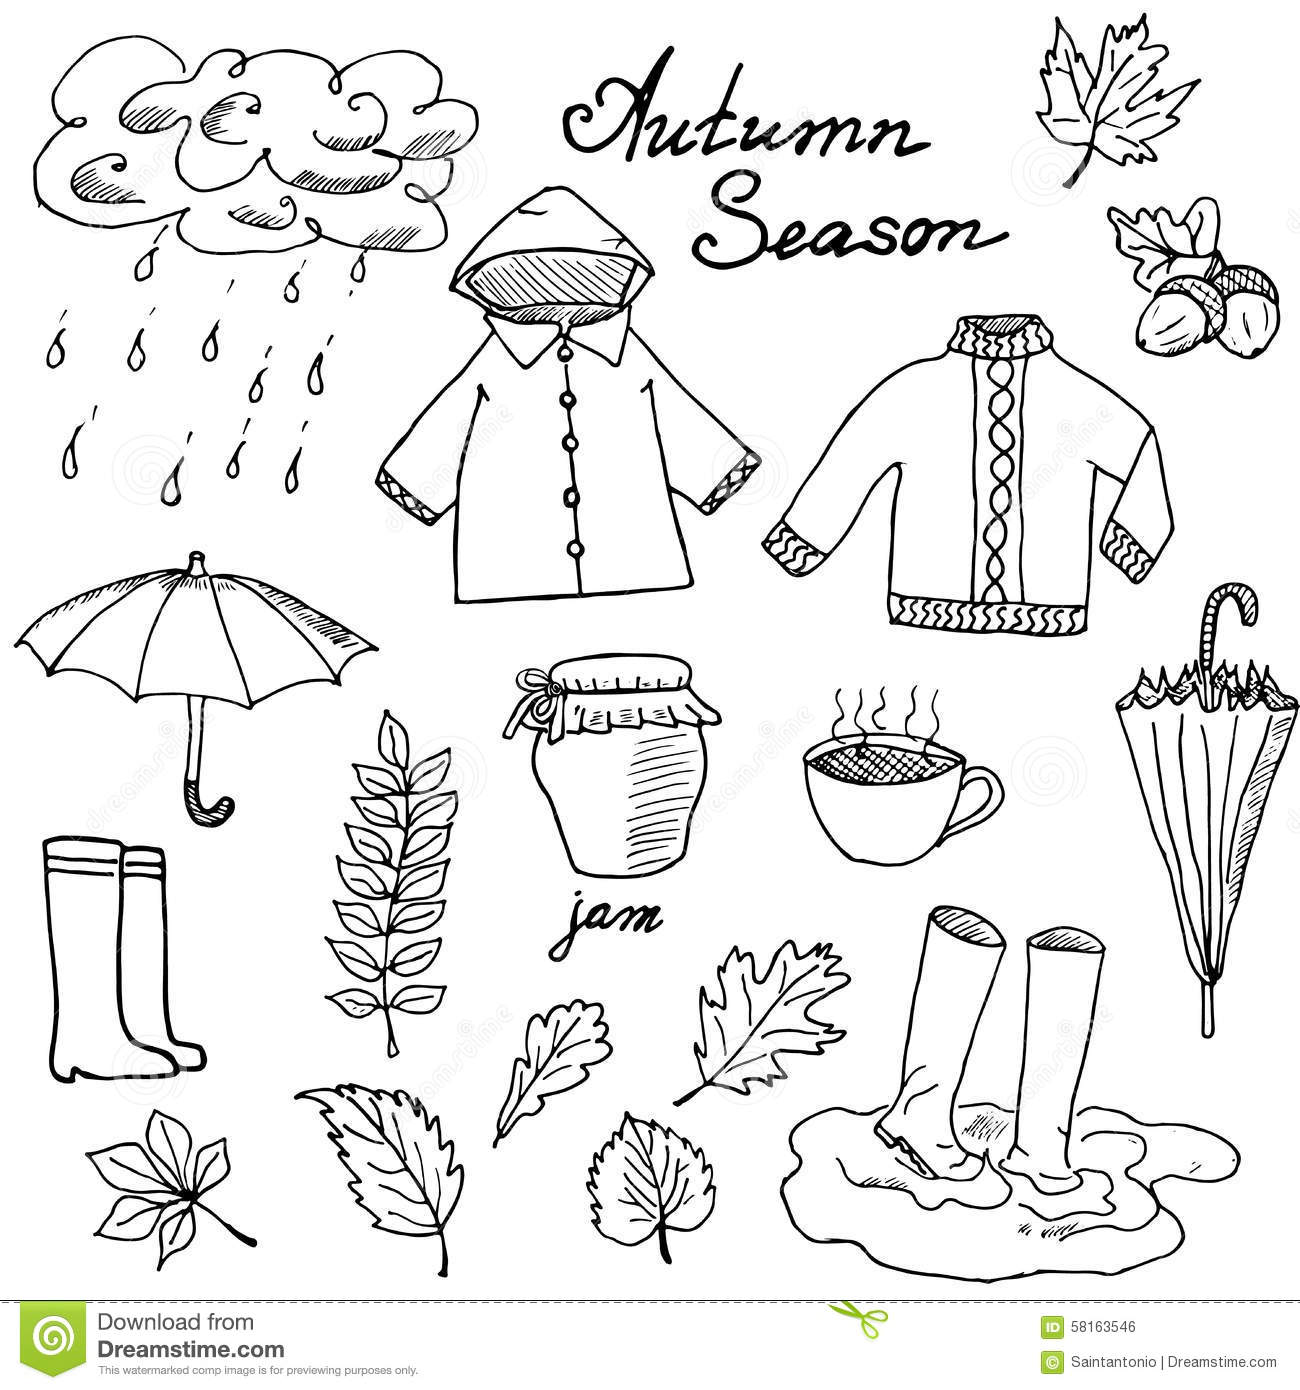 Umbrella Cut And Paste Preschool Worksheet